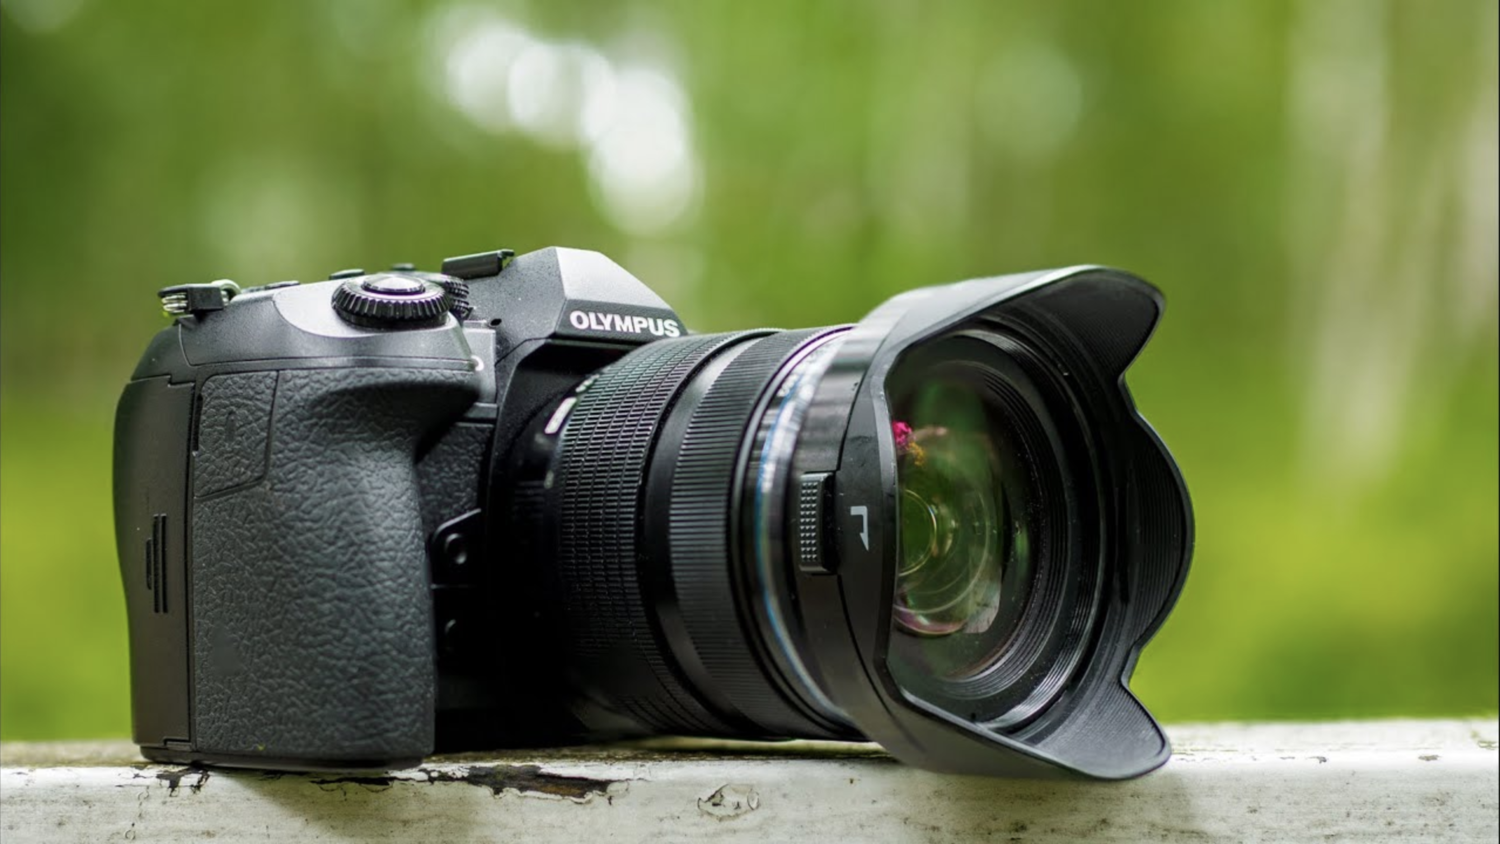 Olympus E-M1 MKII 12-40mm f2.8 PRO KIT - [Great deal with a DISCOUNT code]